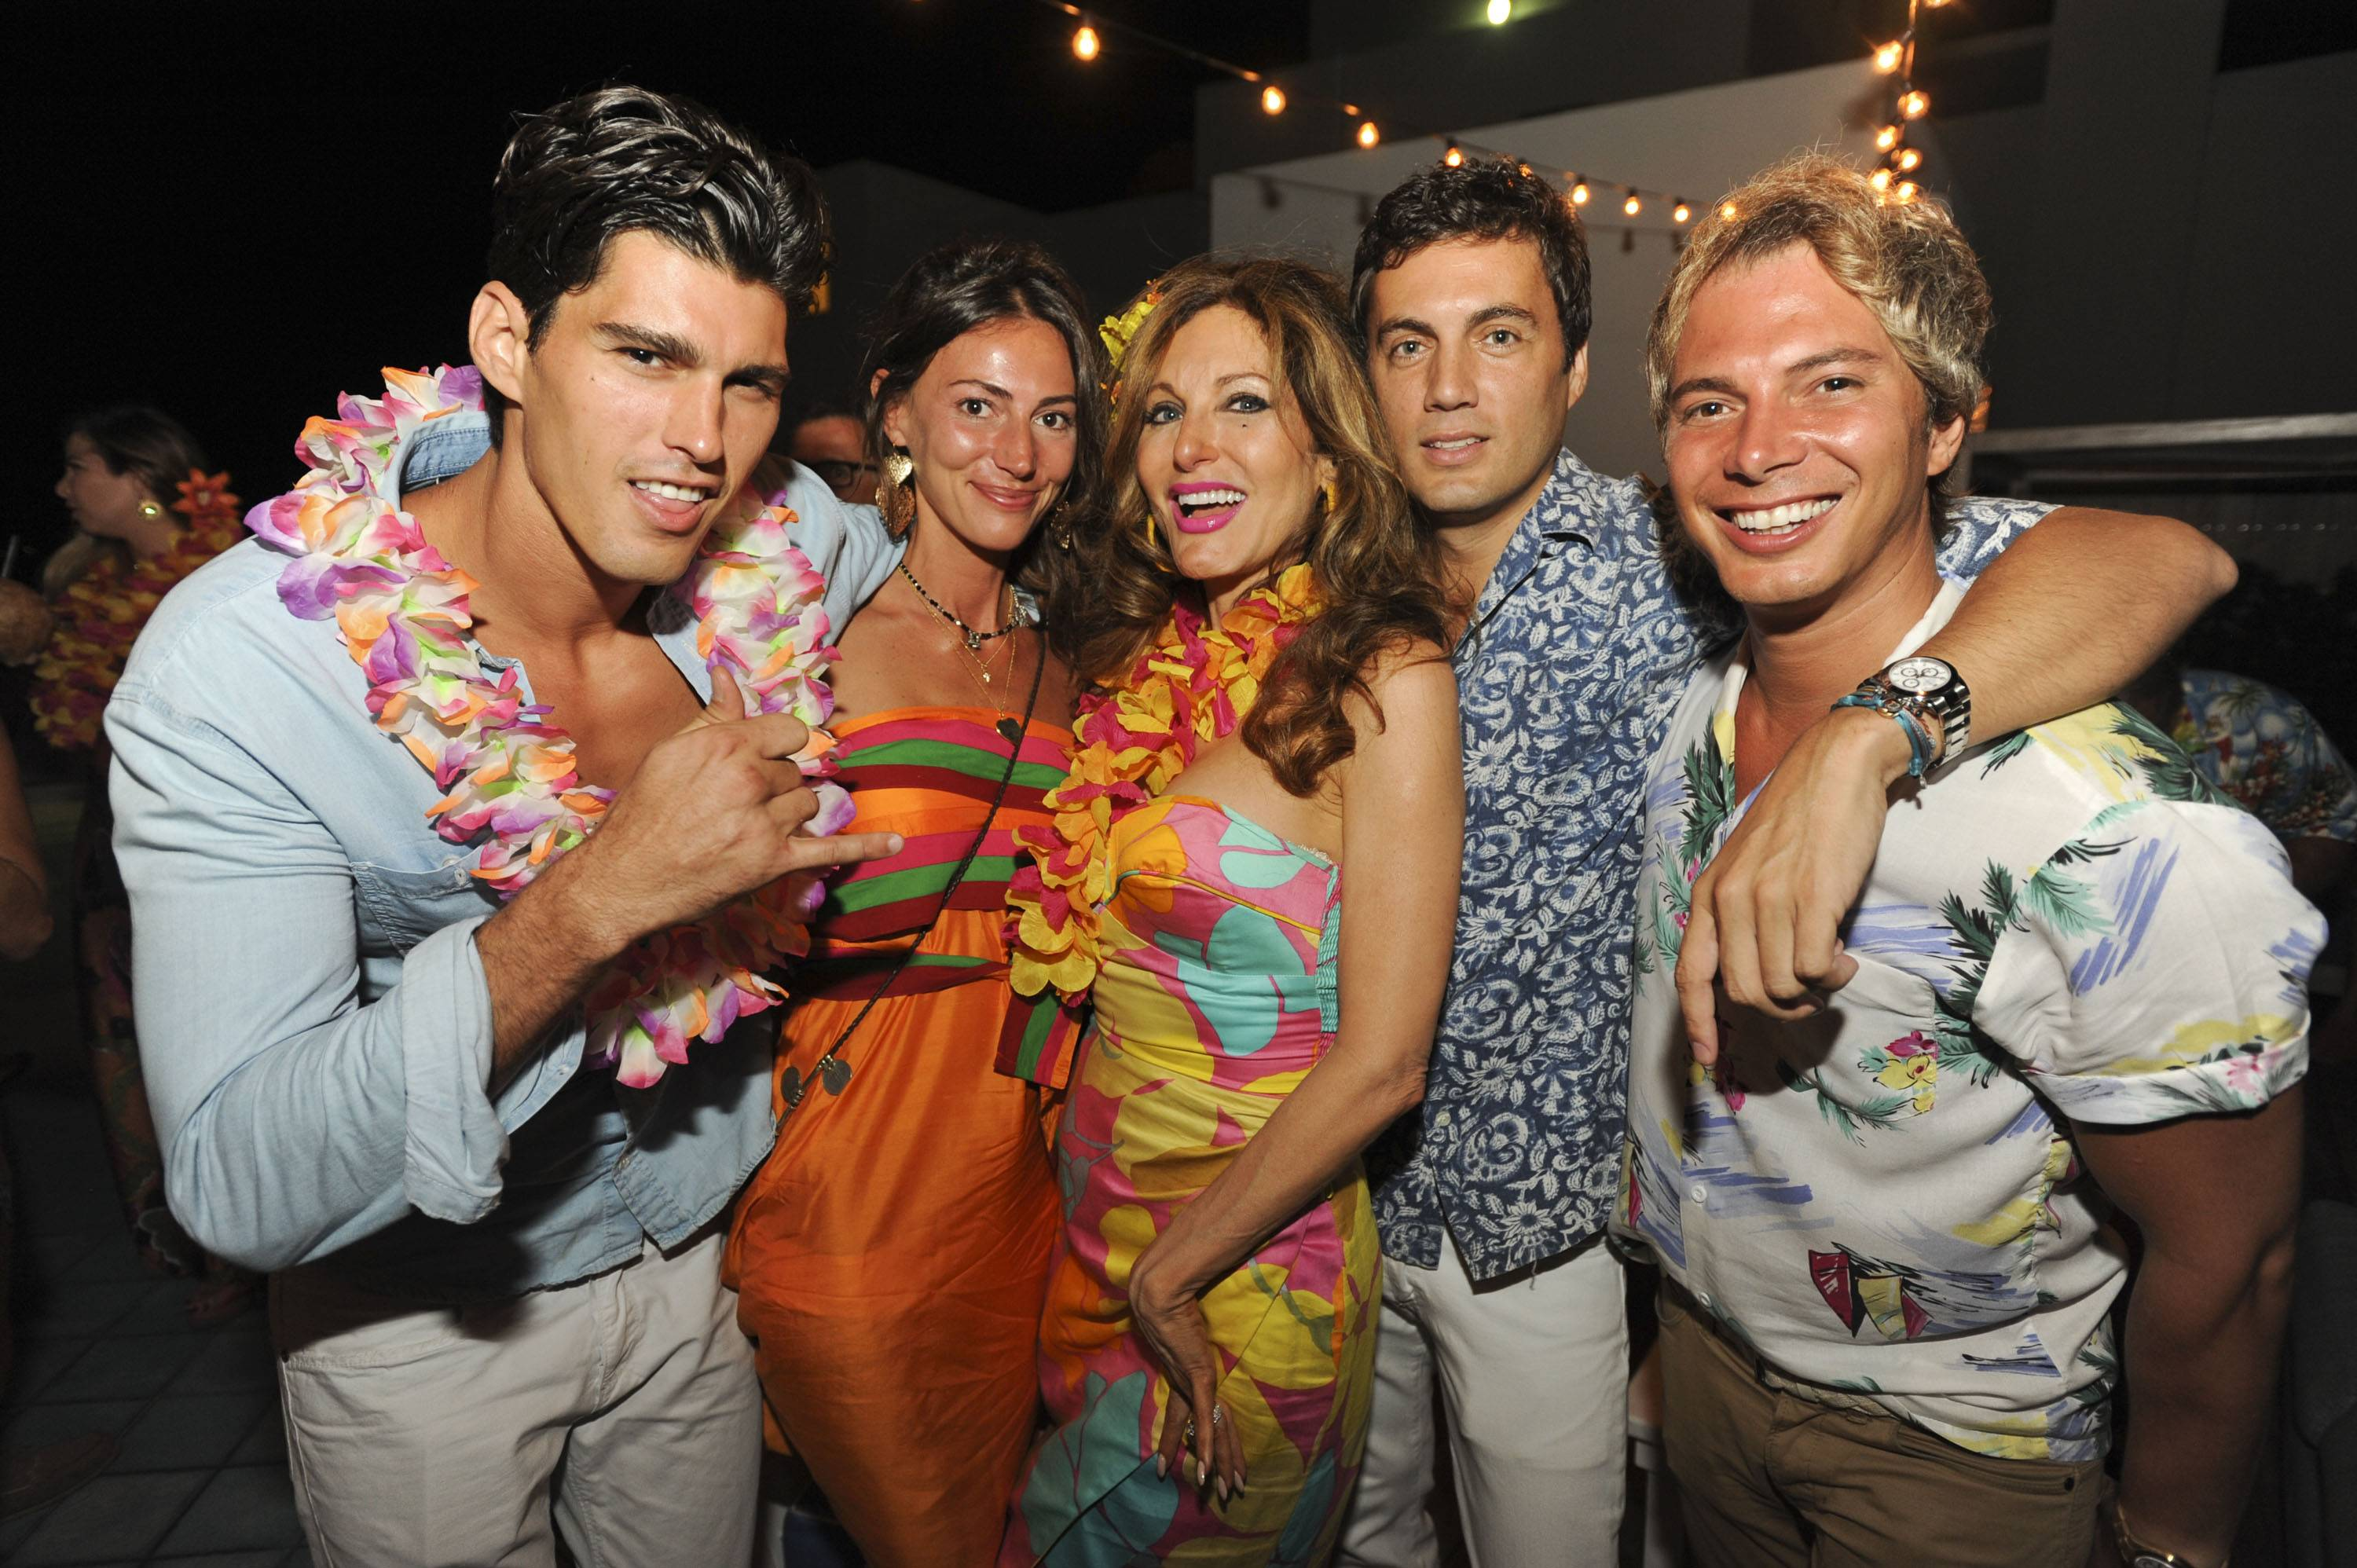 d02b7c7686955 Nick D Annunzio s Hawaiian Birthday Bash At Soho Beach House. by Hadley  HenrietteHaute LivingMagazine ...